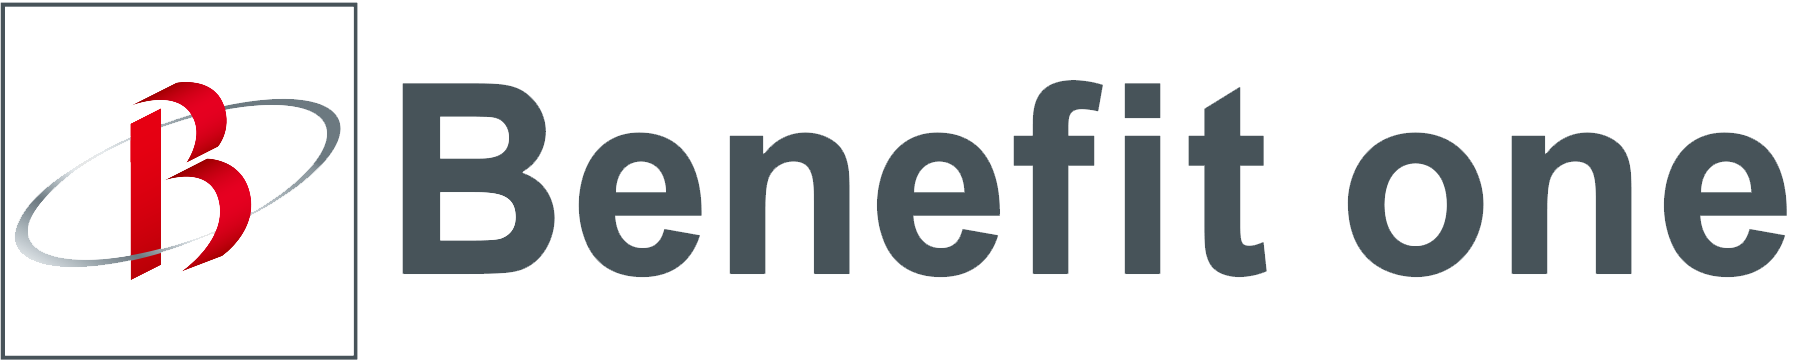 Benefit One - Employee Recognition logo